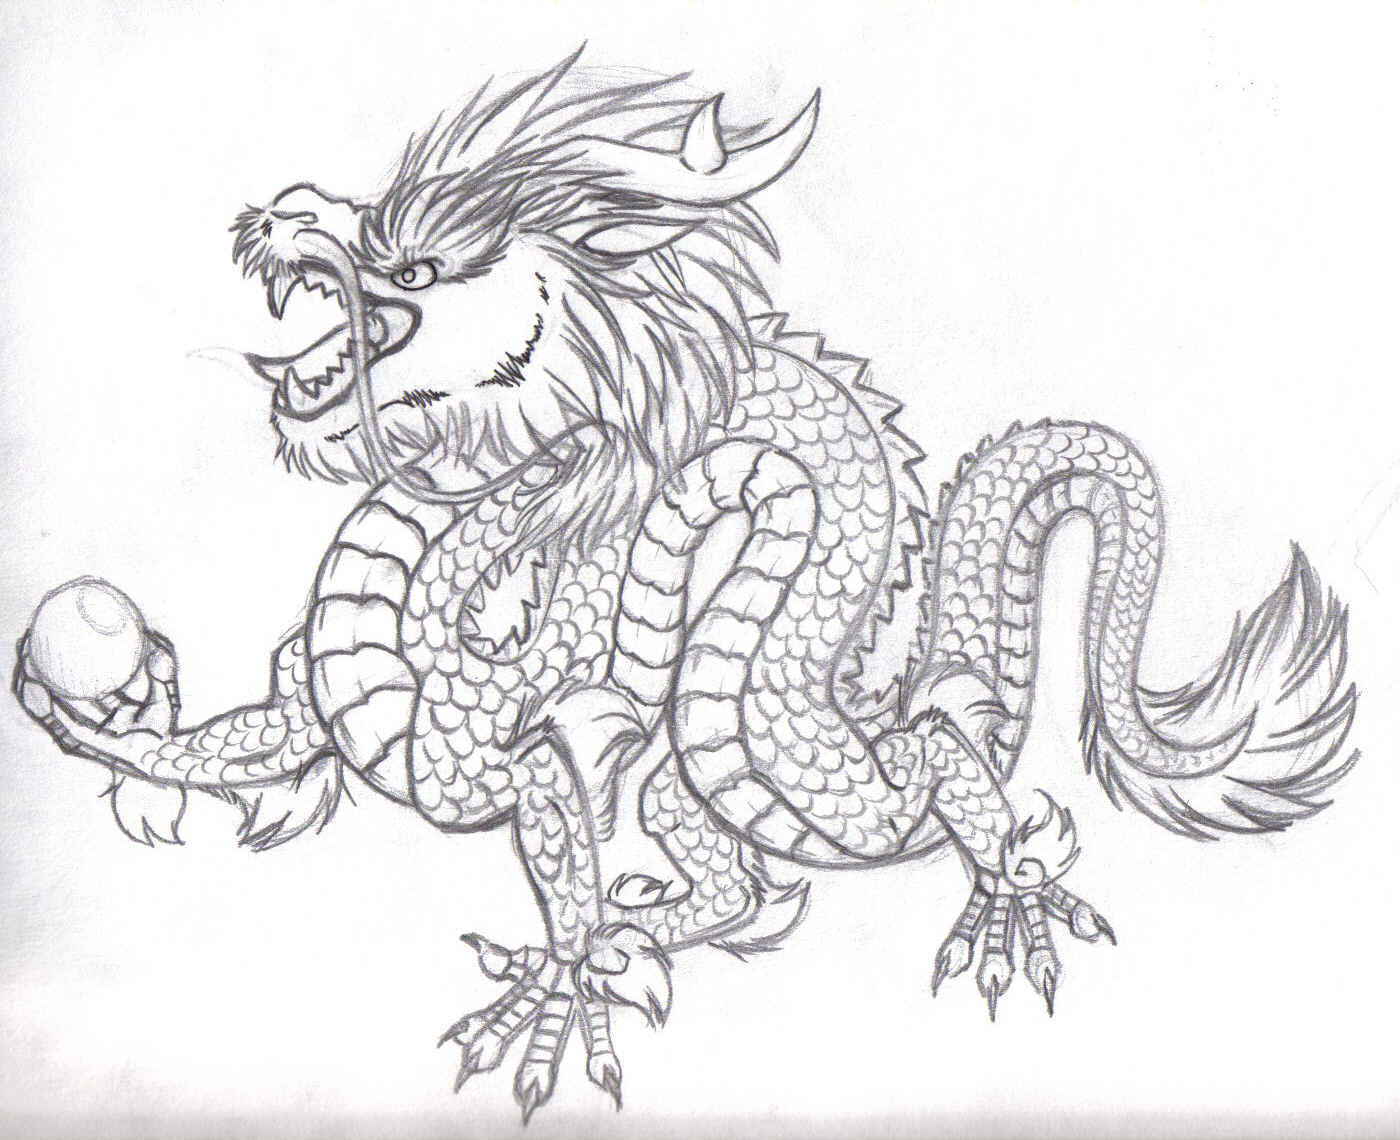 Chinese Dragon Drawings Easy Images amp Pictures Becuo